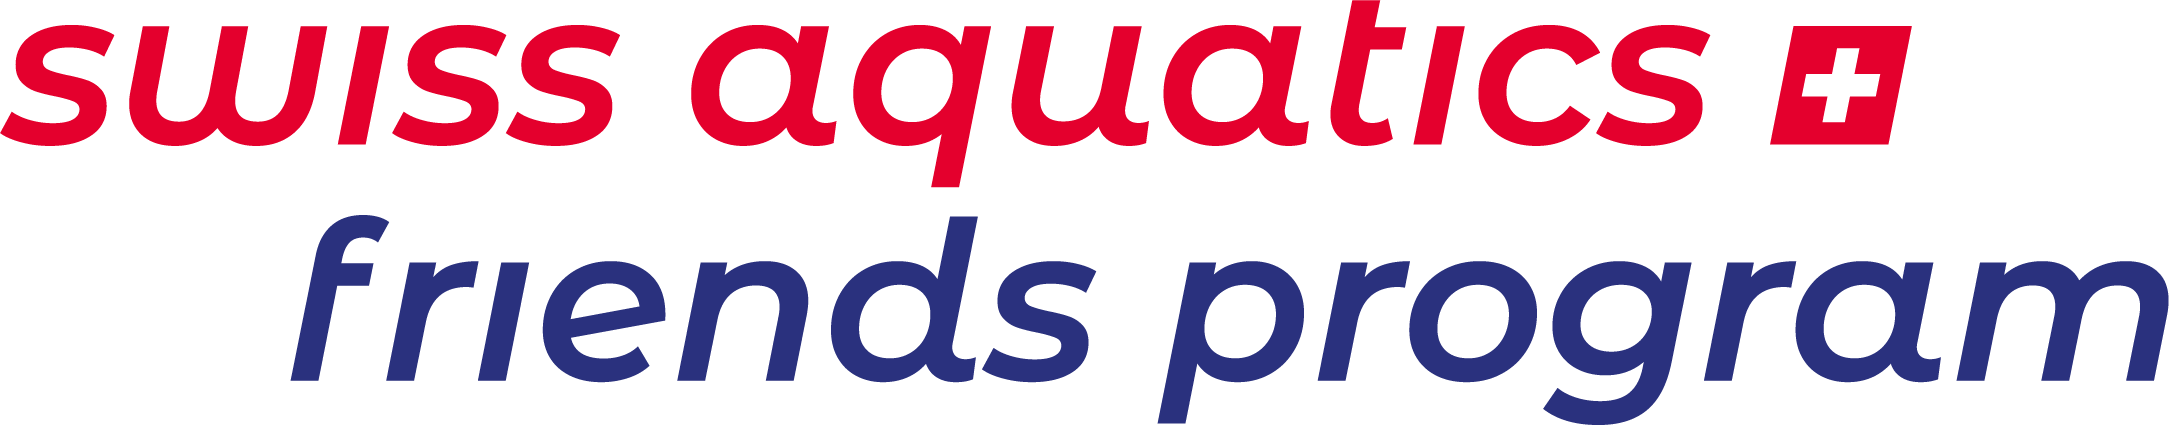 Swiss aquatics friends program Link